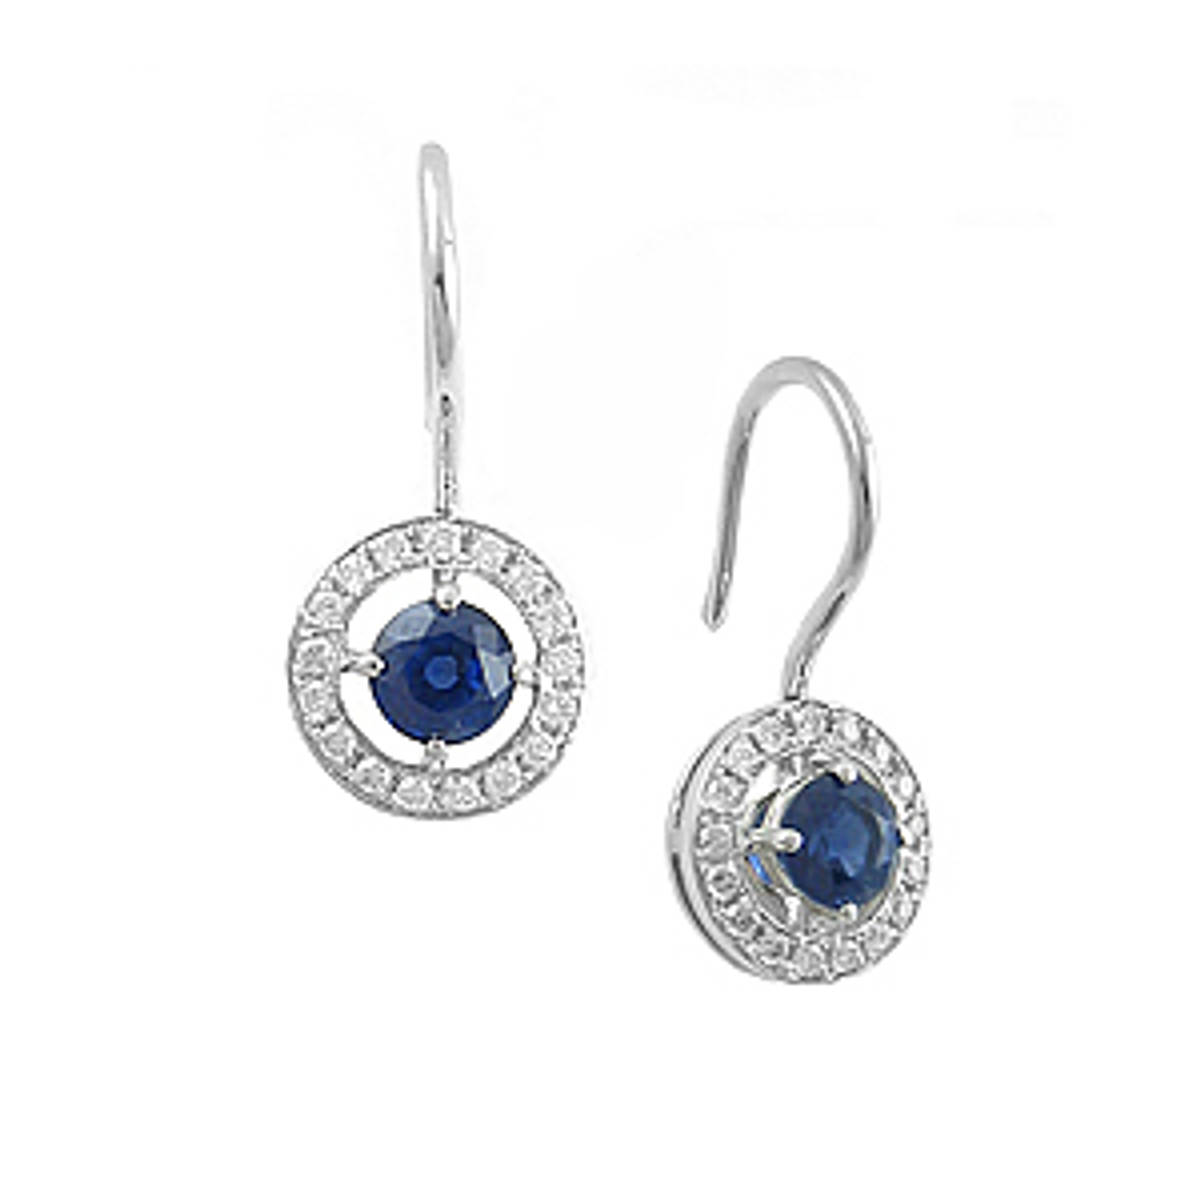 ROUND SAPPHIRE AND DIAMOND HOOP EARRINGSPictured item: sapphire 0.84ct/diamonds 0.22ct set in 18k white goldimage 2605